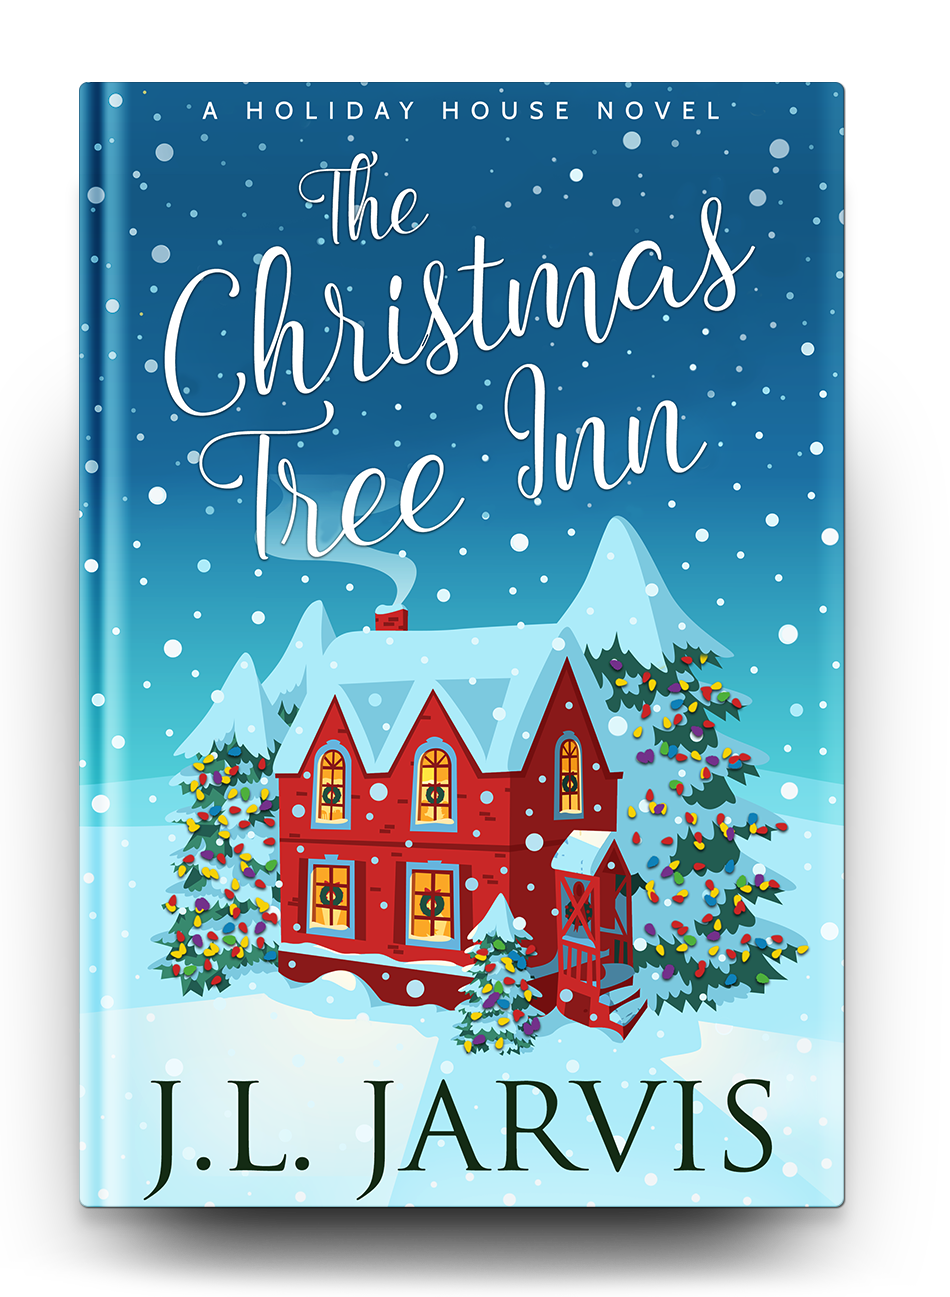 Cover:The Christmas Tree Inn